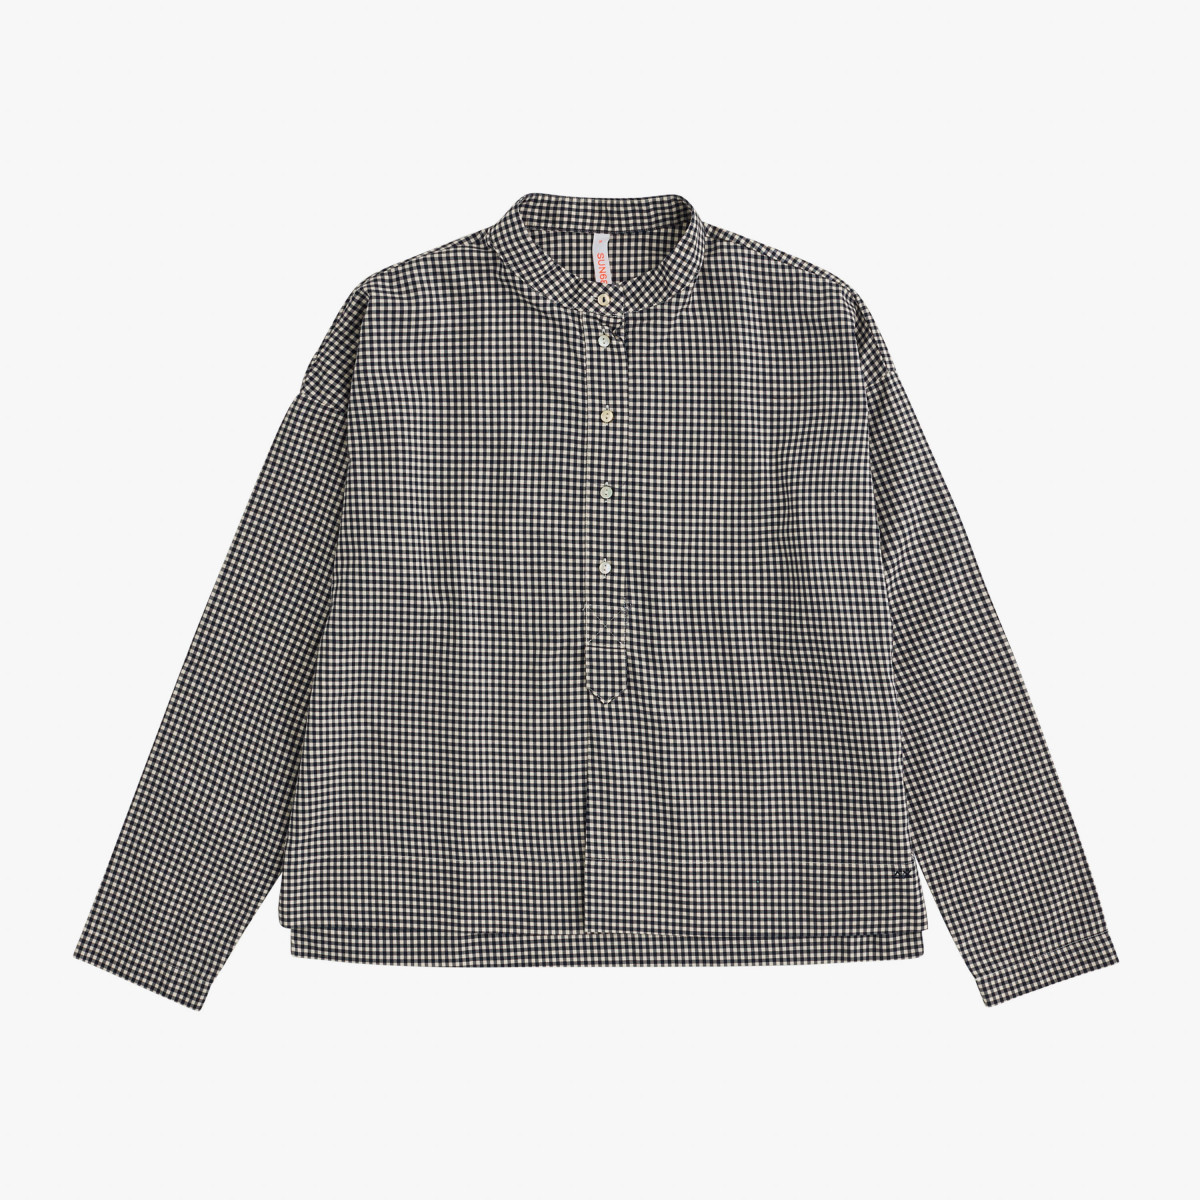 SHIRT KOREA COLLAR PLACKET L/S NAVY SCURO CHECK